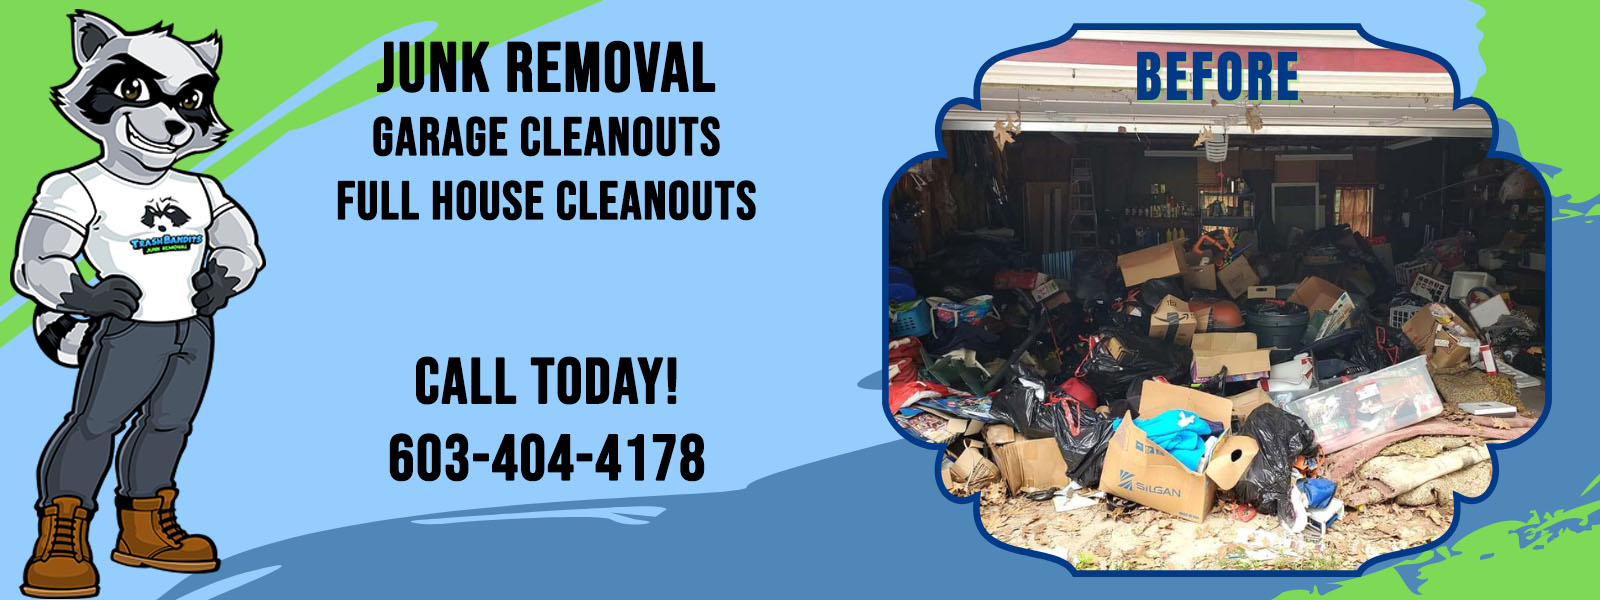 Junk Removal, Garage Cleanouts, Full House Cleanouts